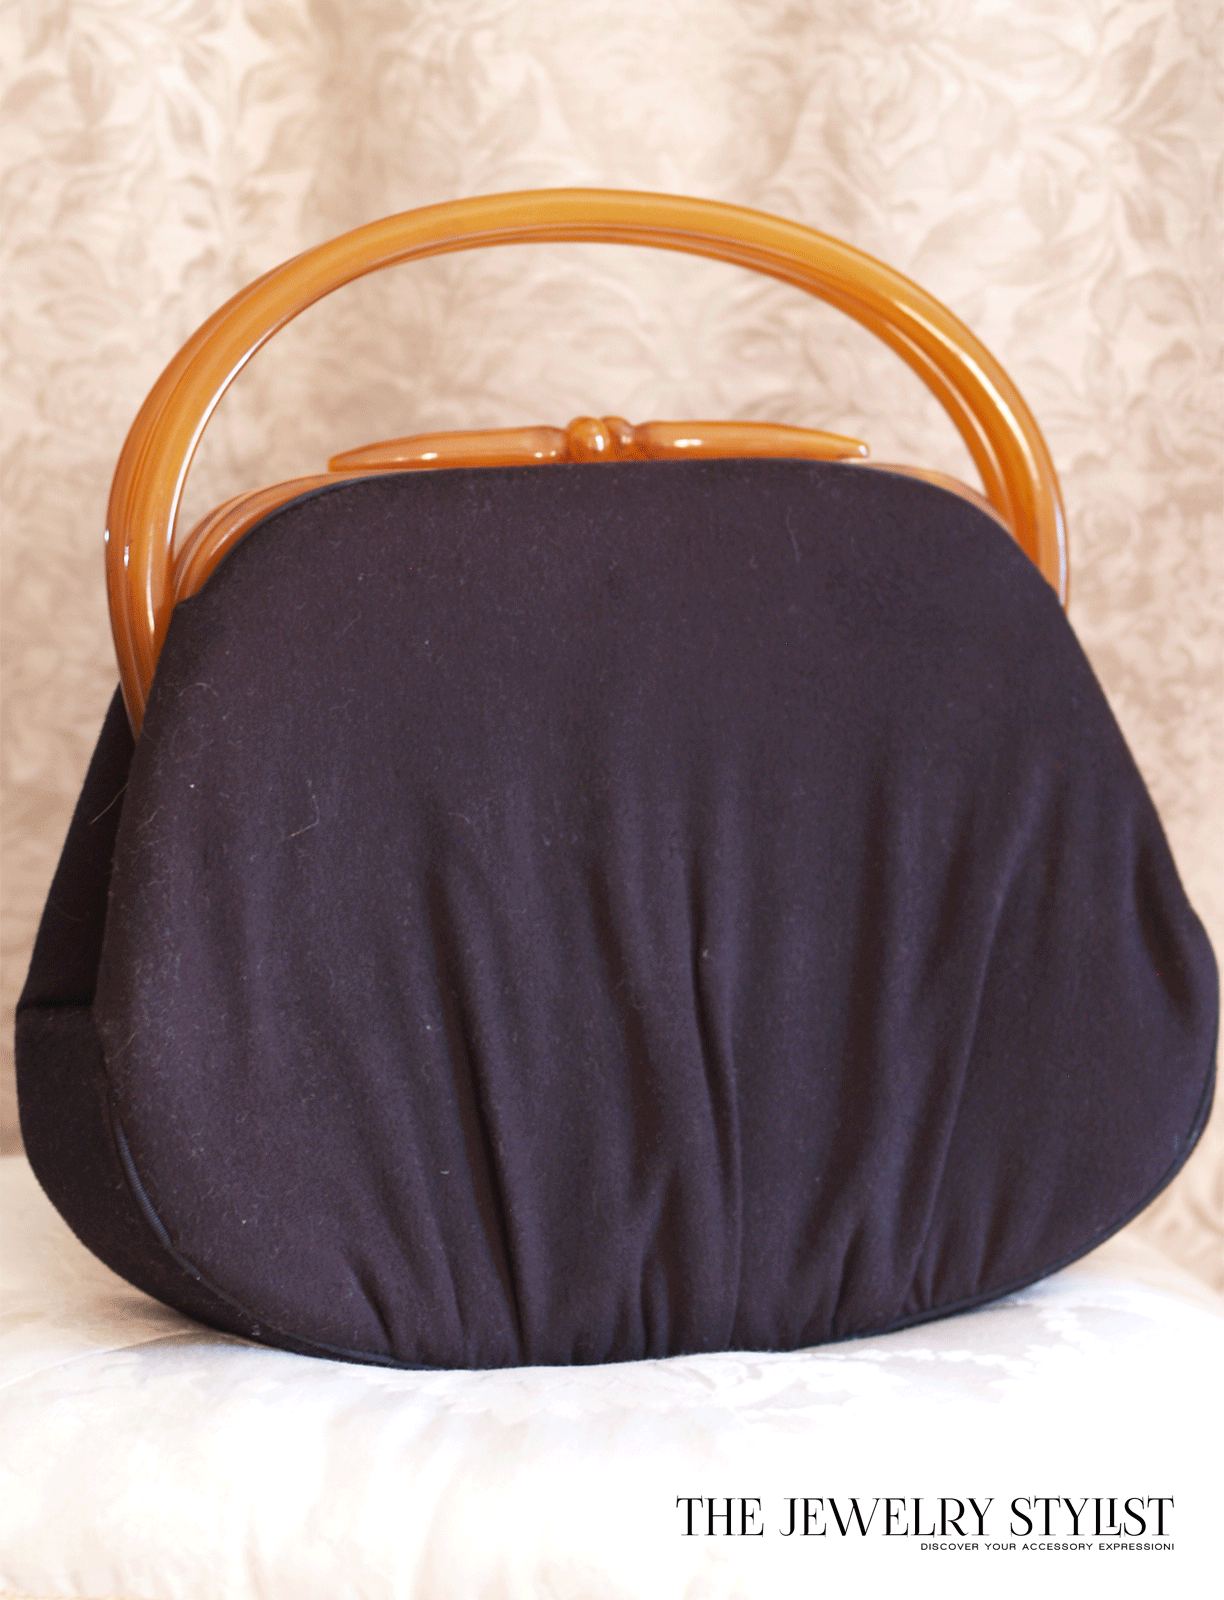 !940s Lewis Bakelite Wool Handbag Purse